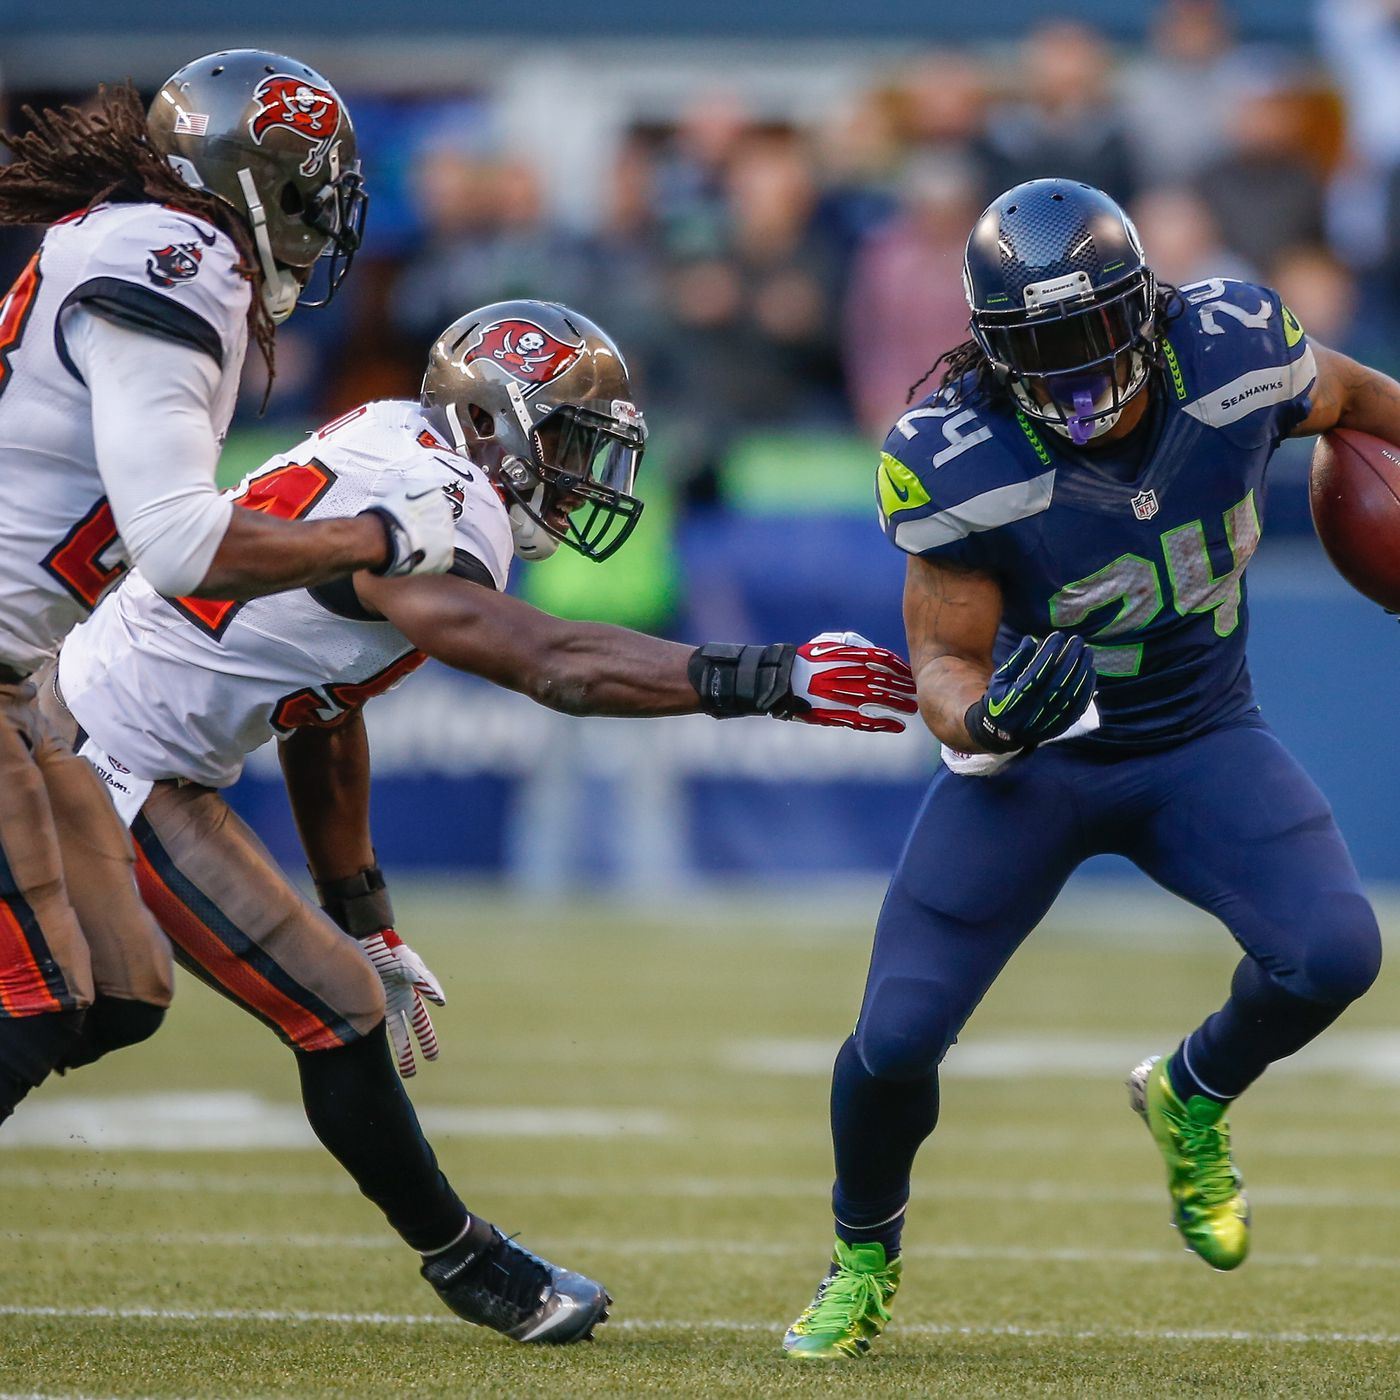 Marshawn Lynch discussed joining the Bucs with Tom Brady - Bucs Nation